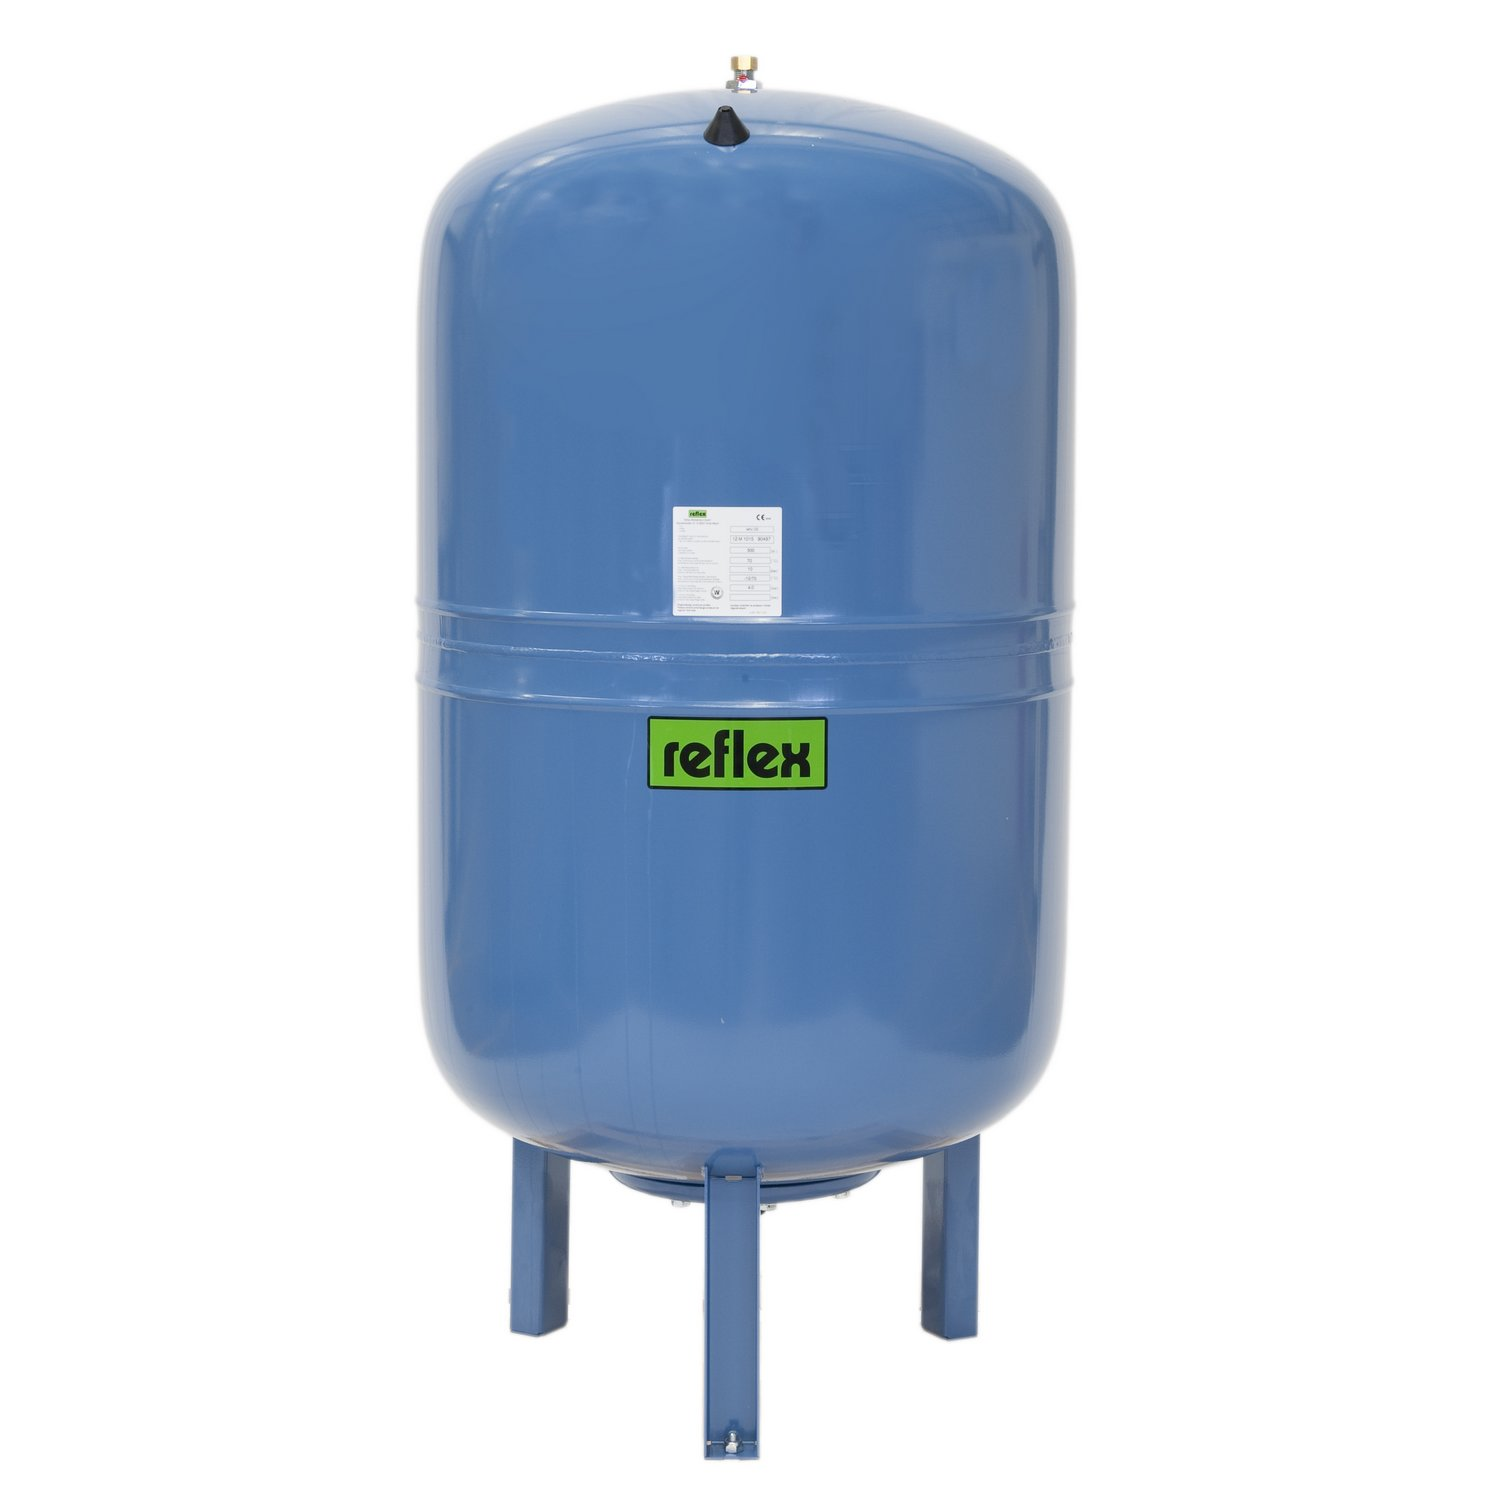 https://www.mepstock.co.uk/admin/images/VERTICAL POTABLE WATER EXPANSION VESSELS 50 - 1000 litres.jpg